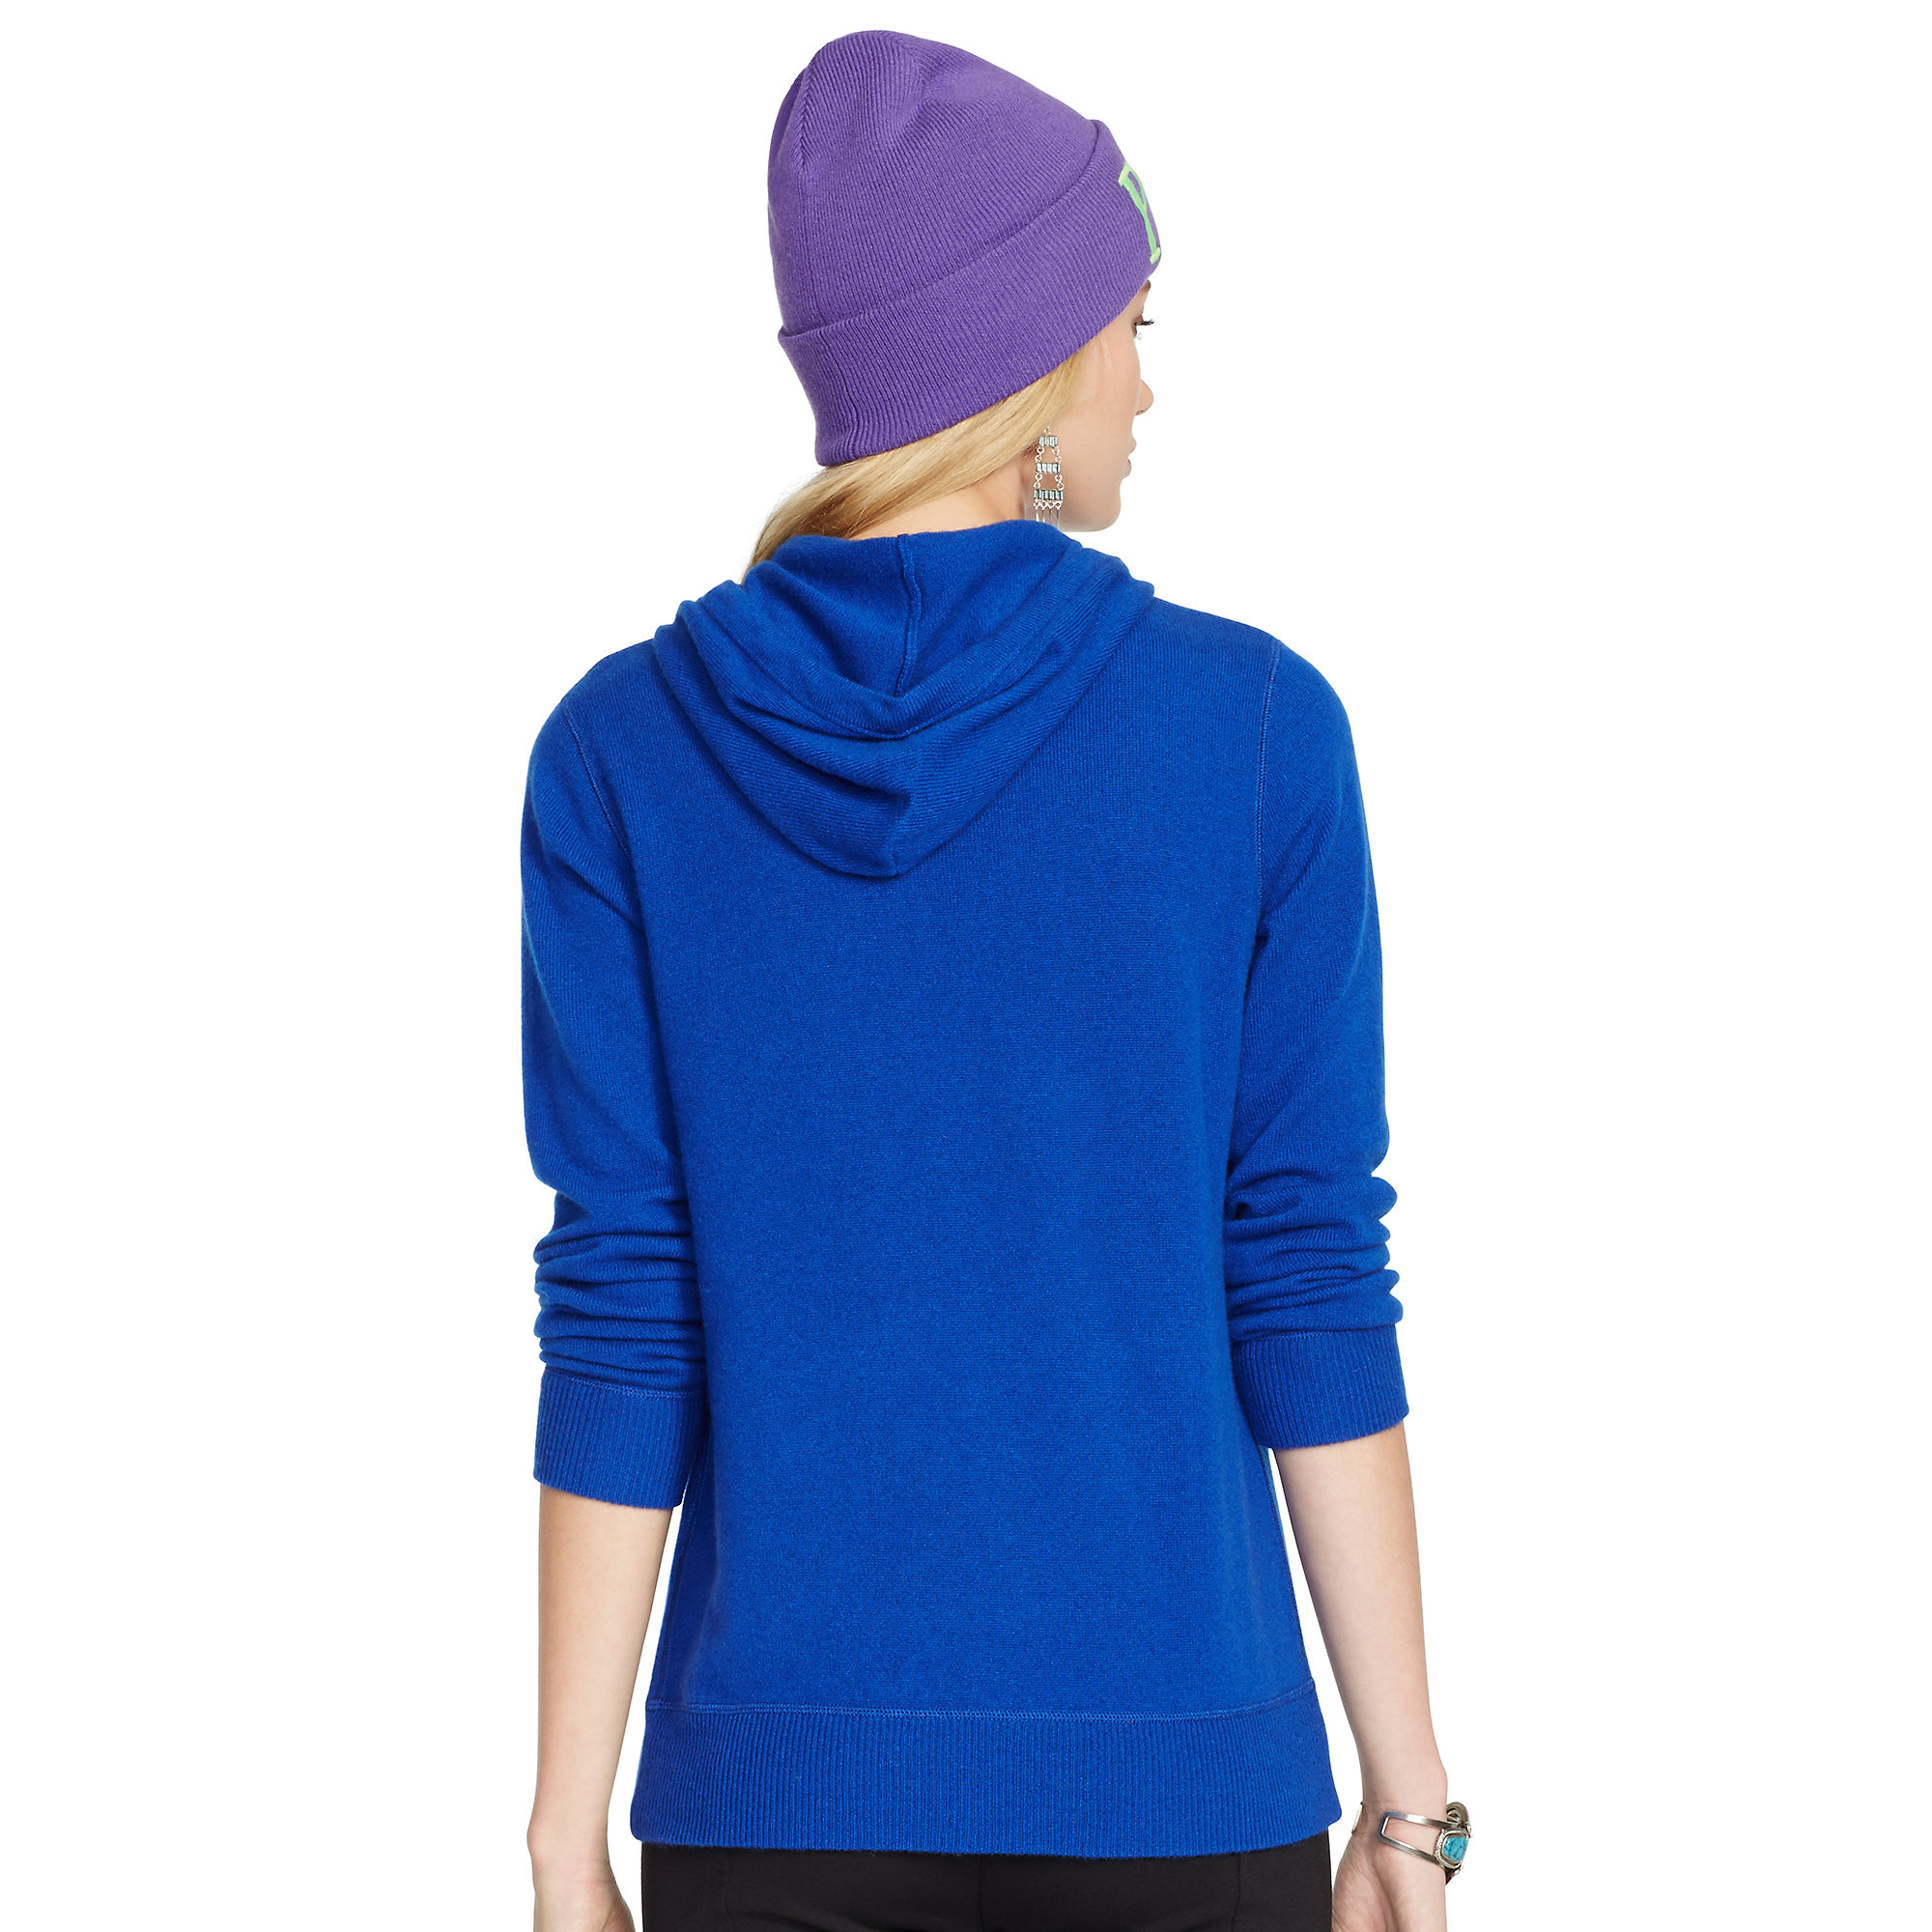 polo ralph lauren cashmere hoodie in blue lyst. Black Bedroom Furniture Sets. Home Design Ideas